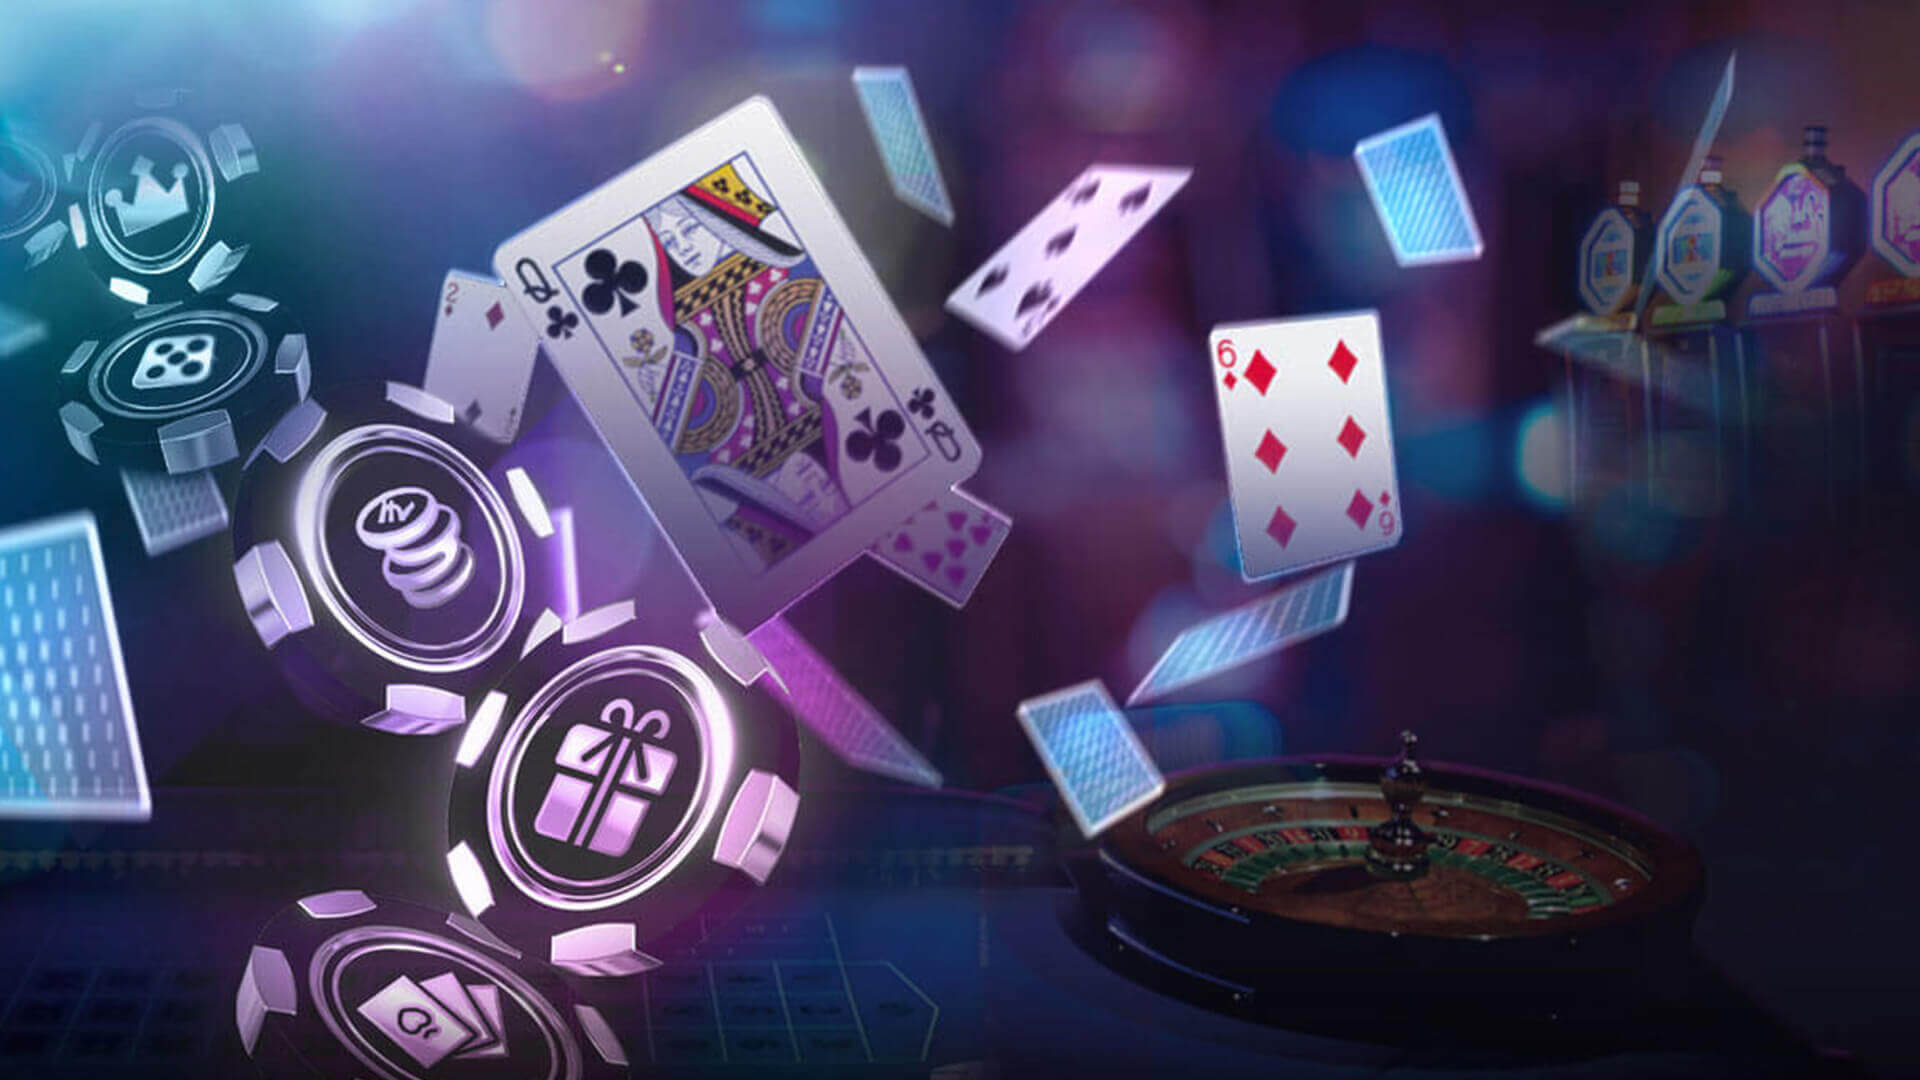 Finest Online Casino USA Sites 2020 - Highest Payout For United States Players